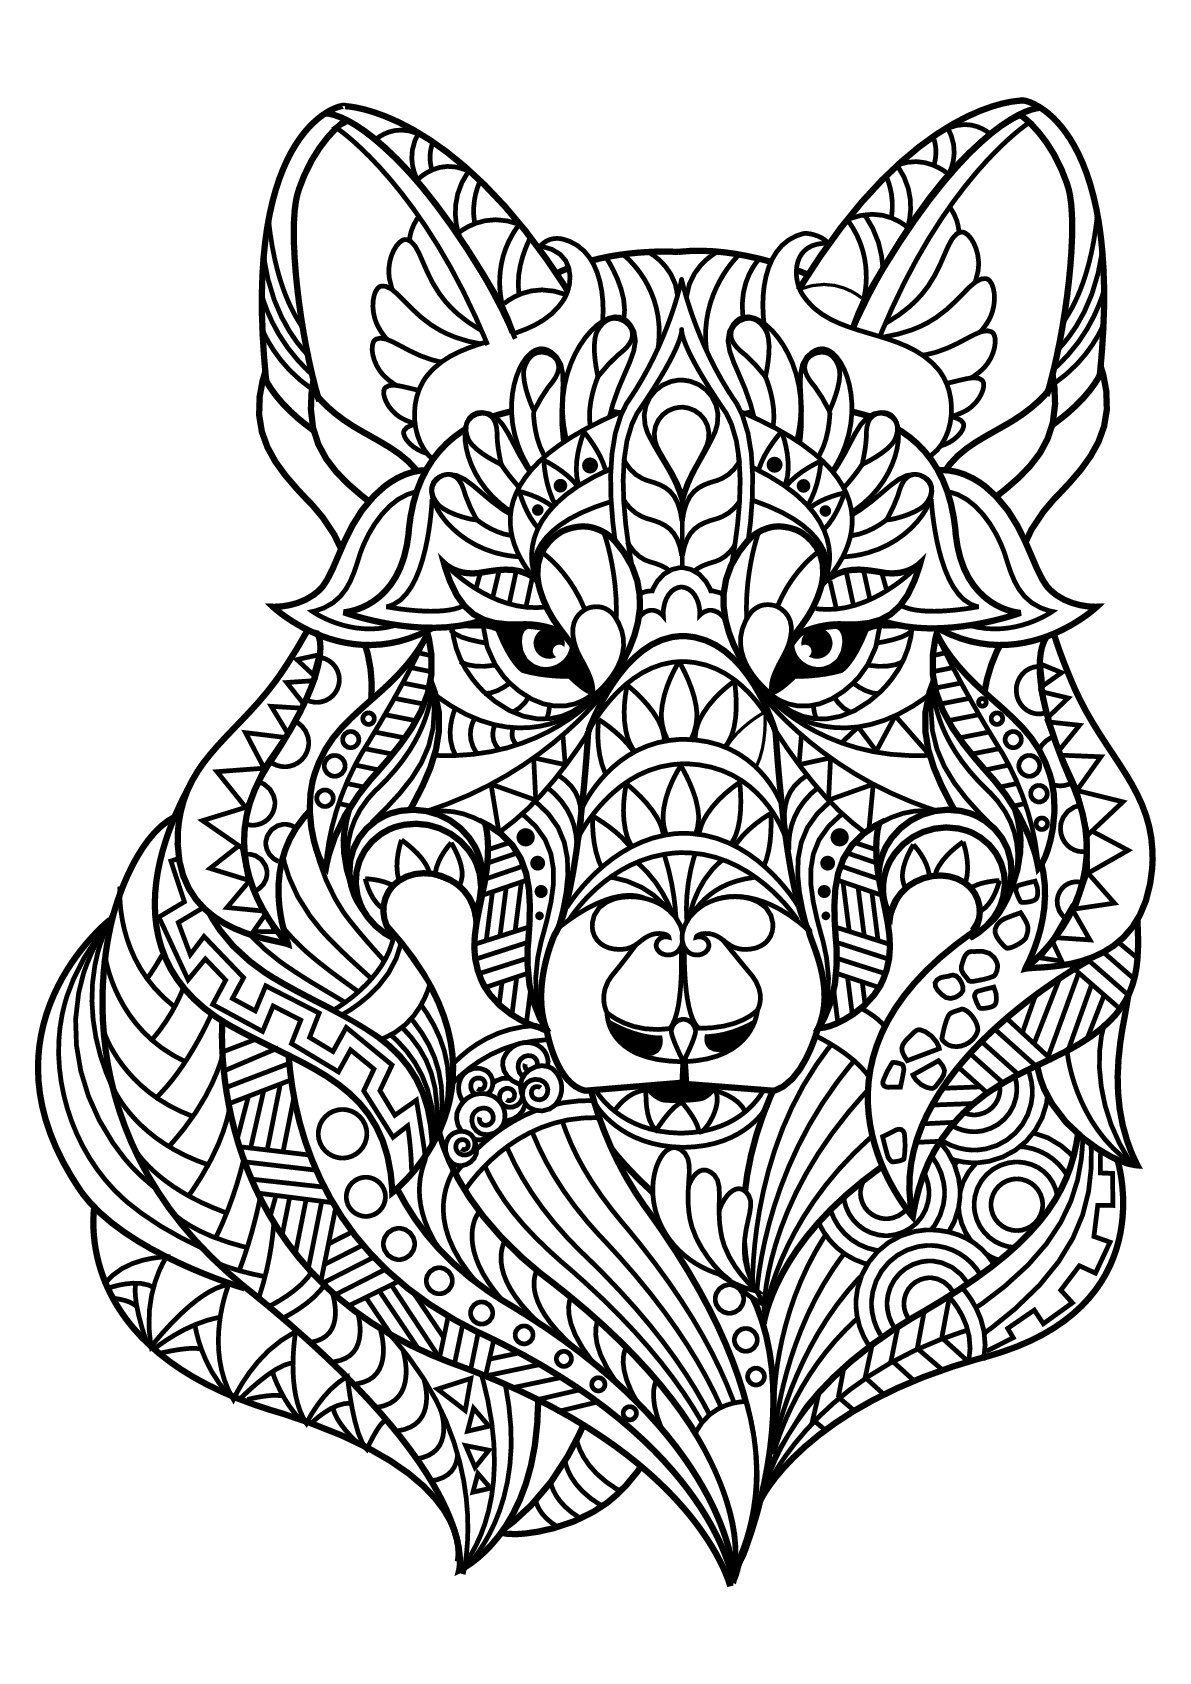 Free book wolf wolves adult coloring pages for Timberwolves coloring pages